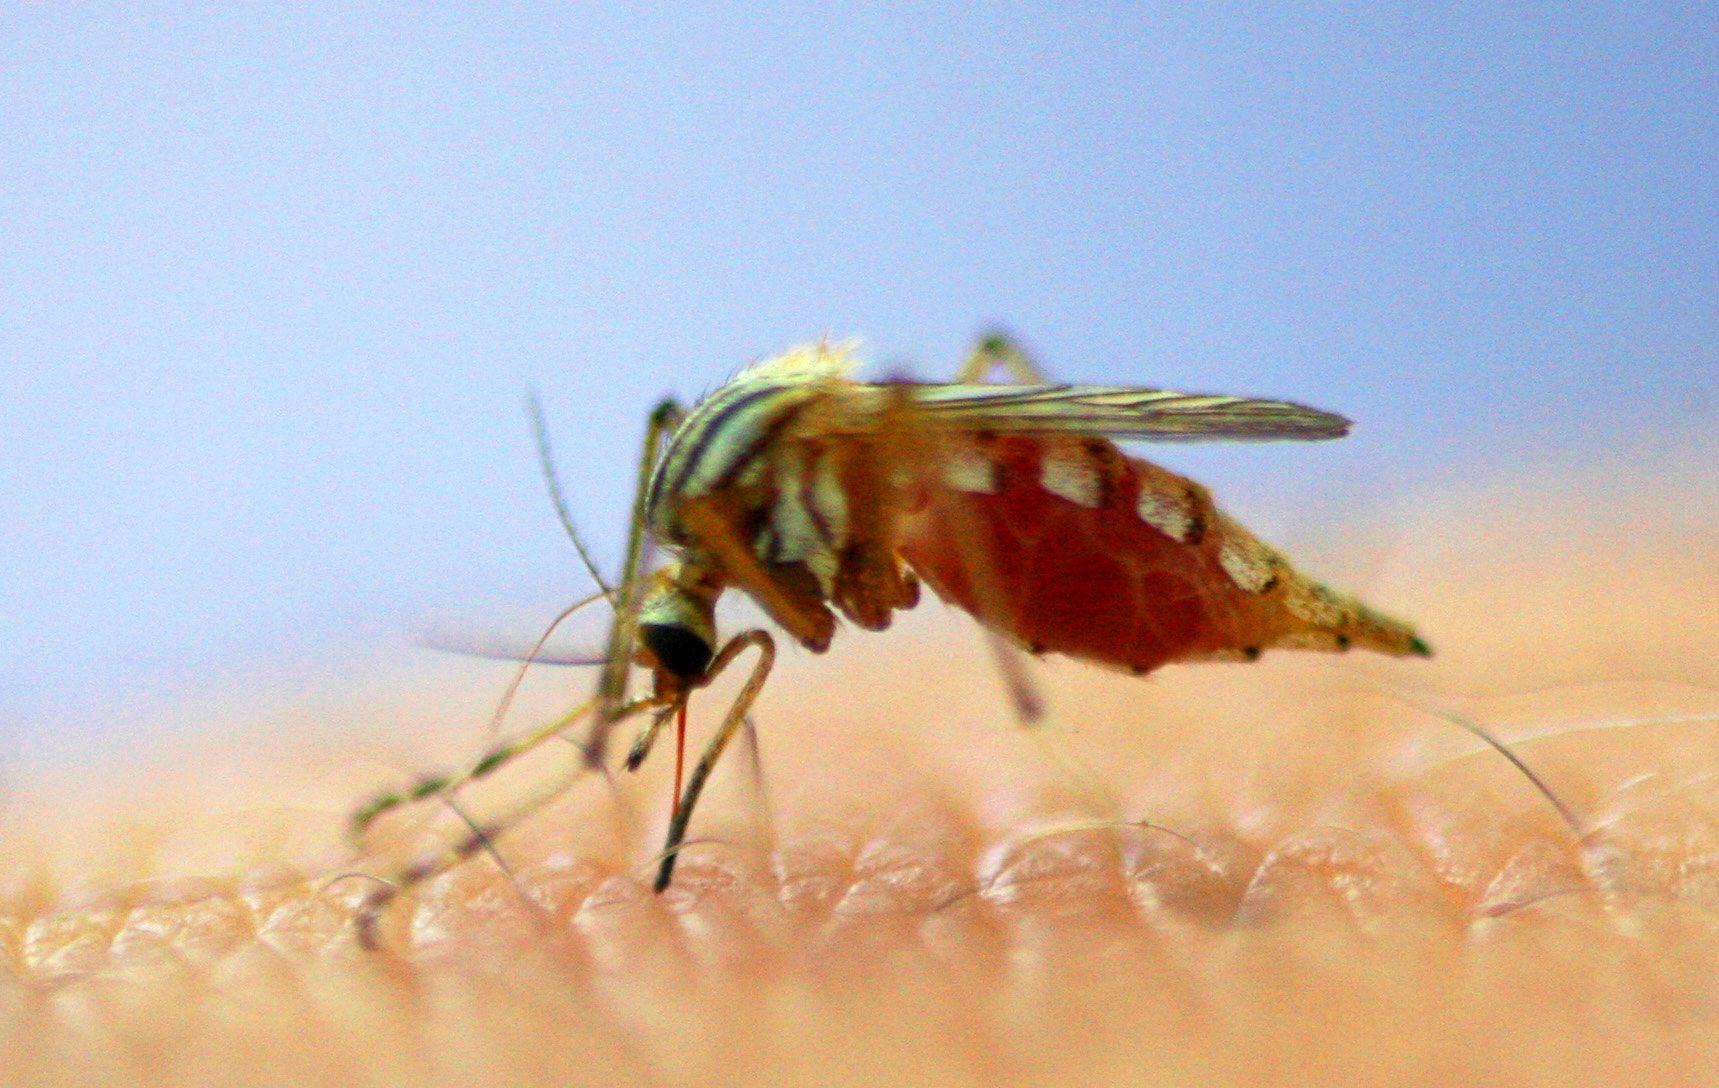 BLOOD SUCKER: Cases of Ross River virus cases are on the rise in the North Burnett for 2019.